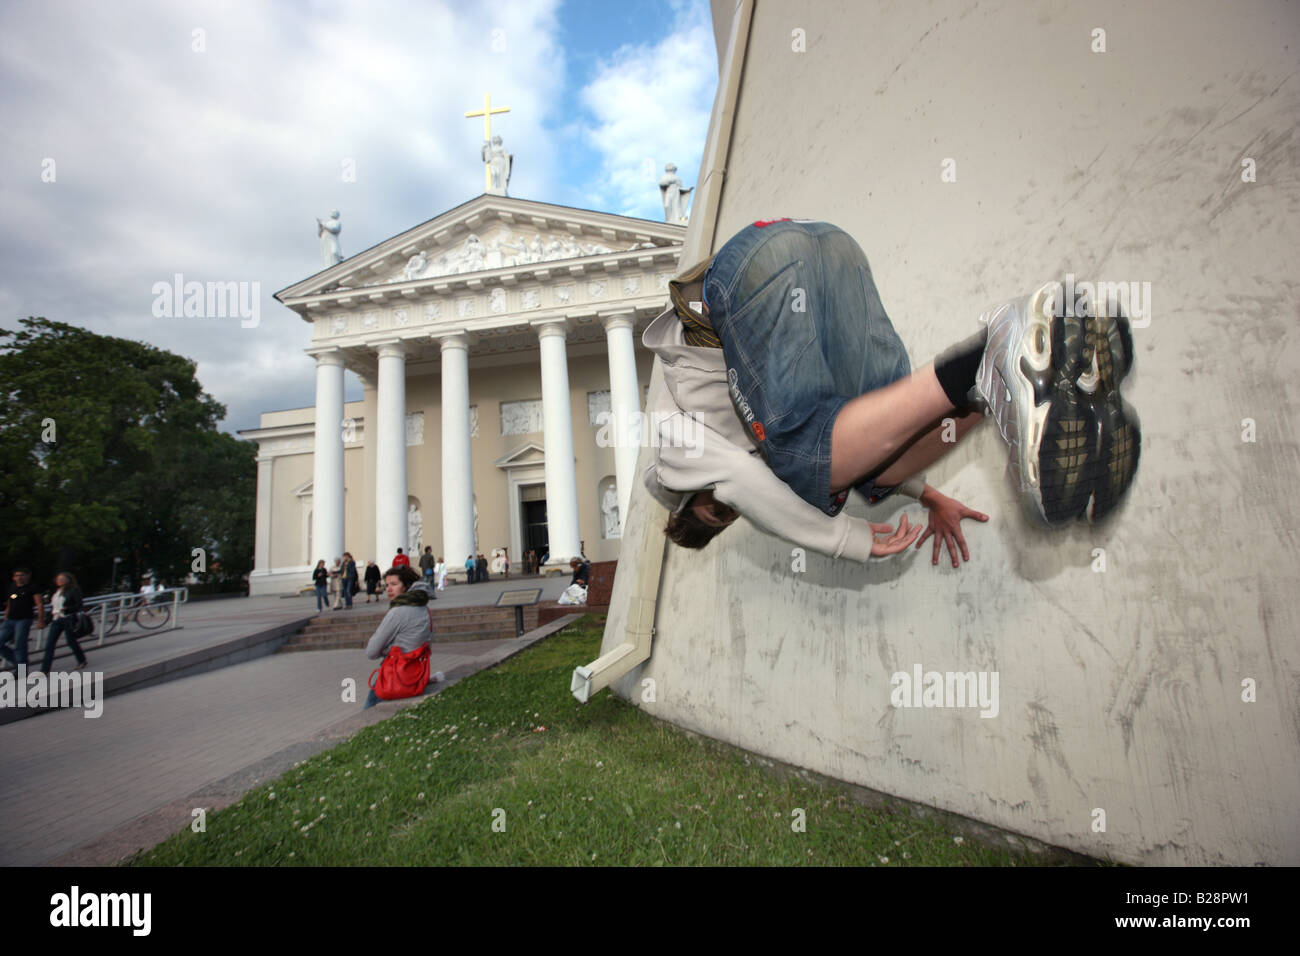 LTU Lithuania Capital Vilnius Kids doing jump action at the cathedral square - Stock Image